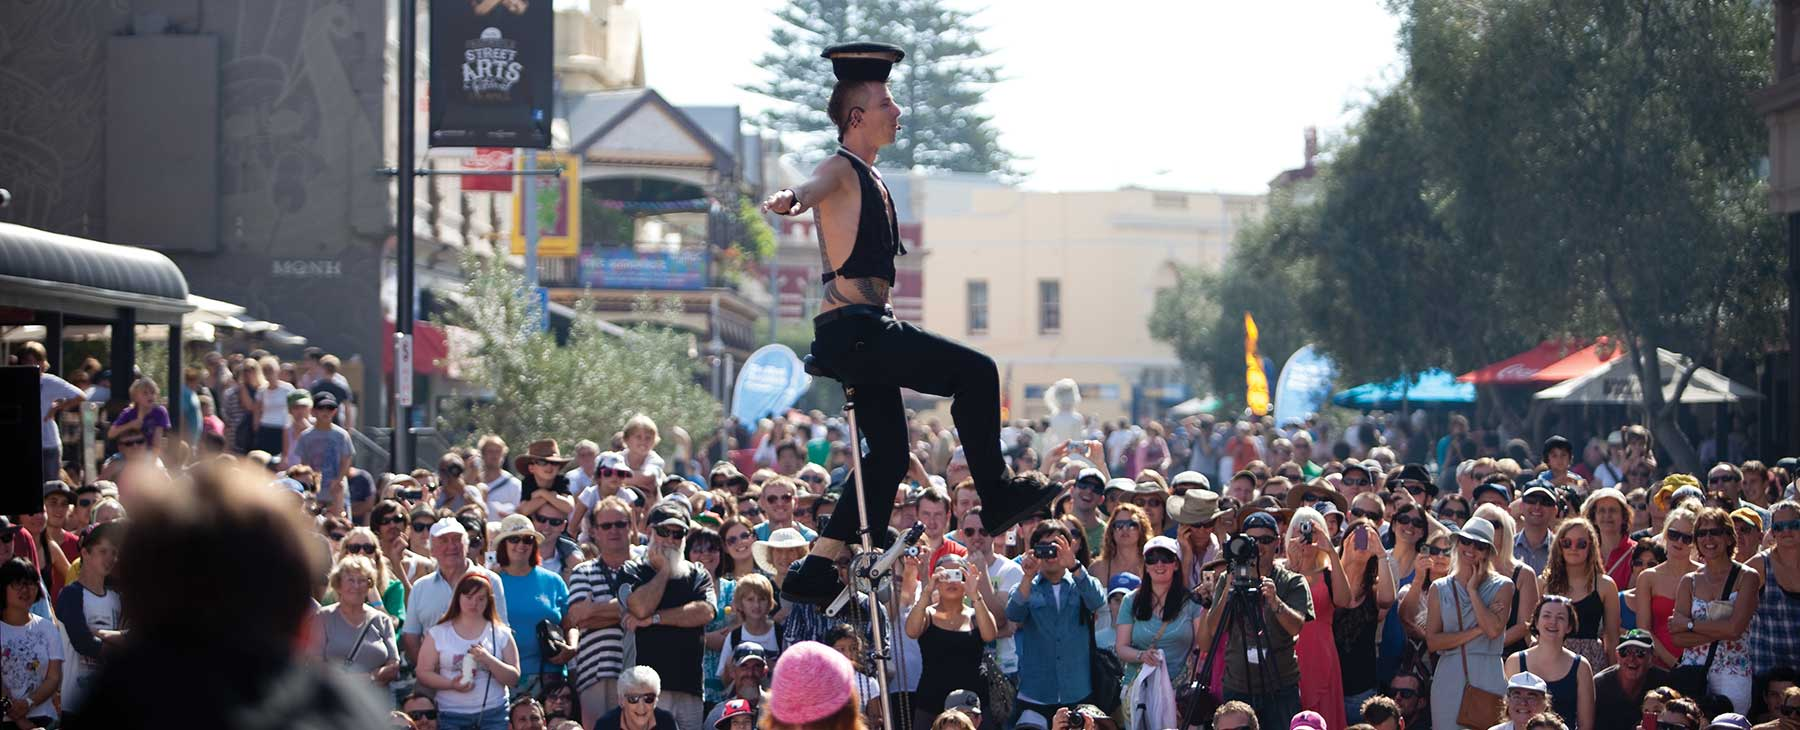 Acrobat balancing on a unicycle in front of a large crowd